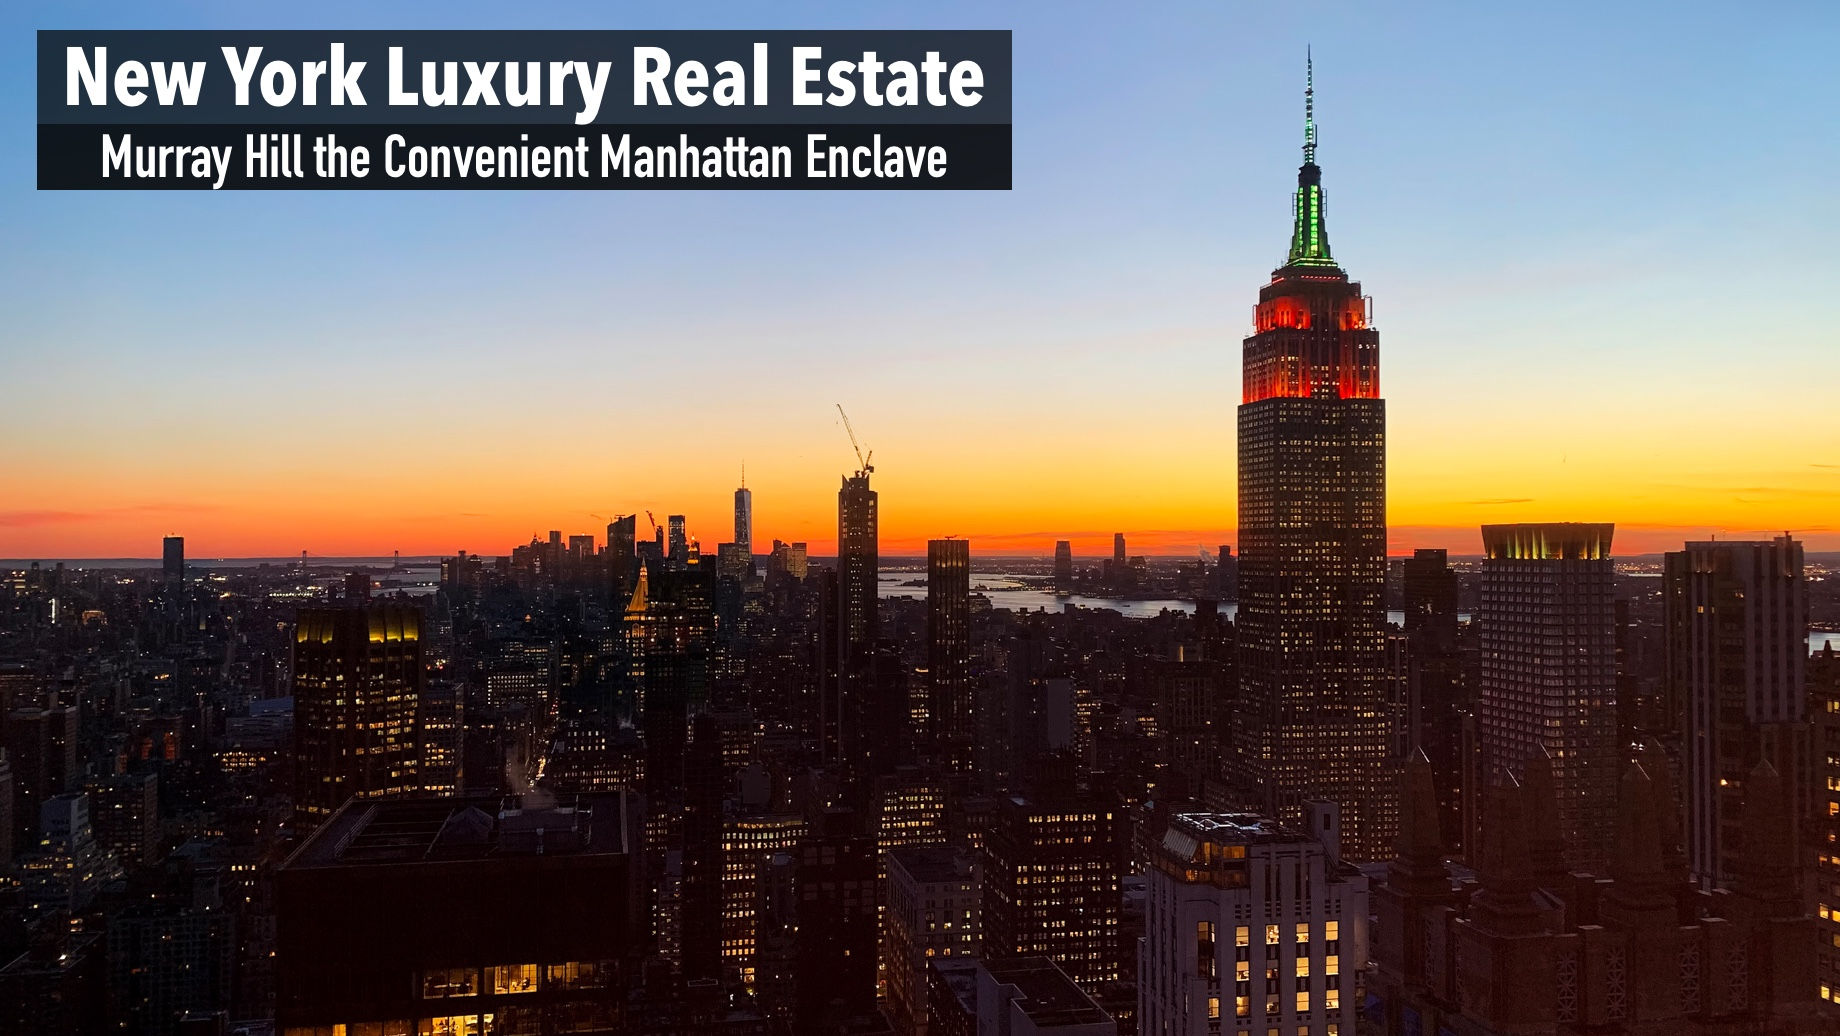 New York Luxury Real Estate - Murray Hill the Convenient Manhattan Enclave